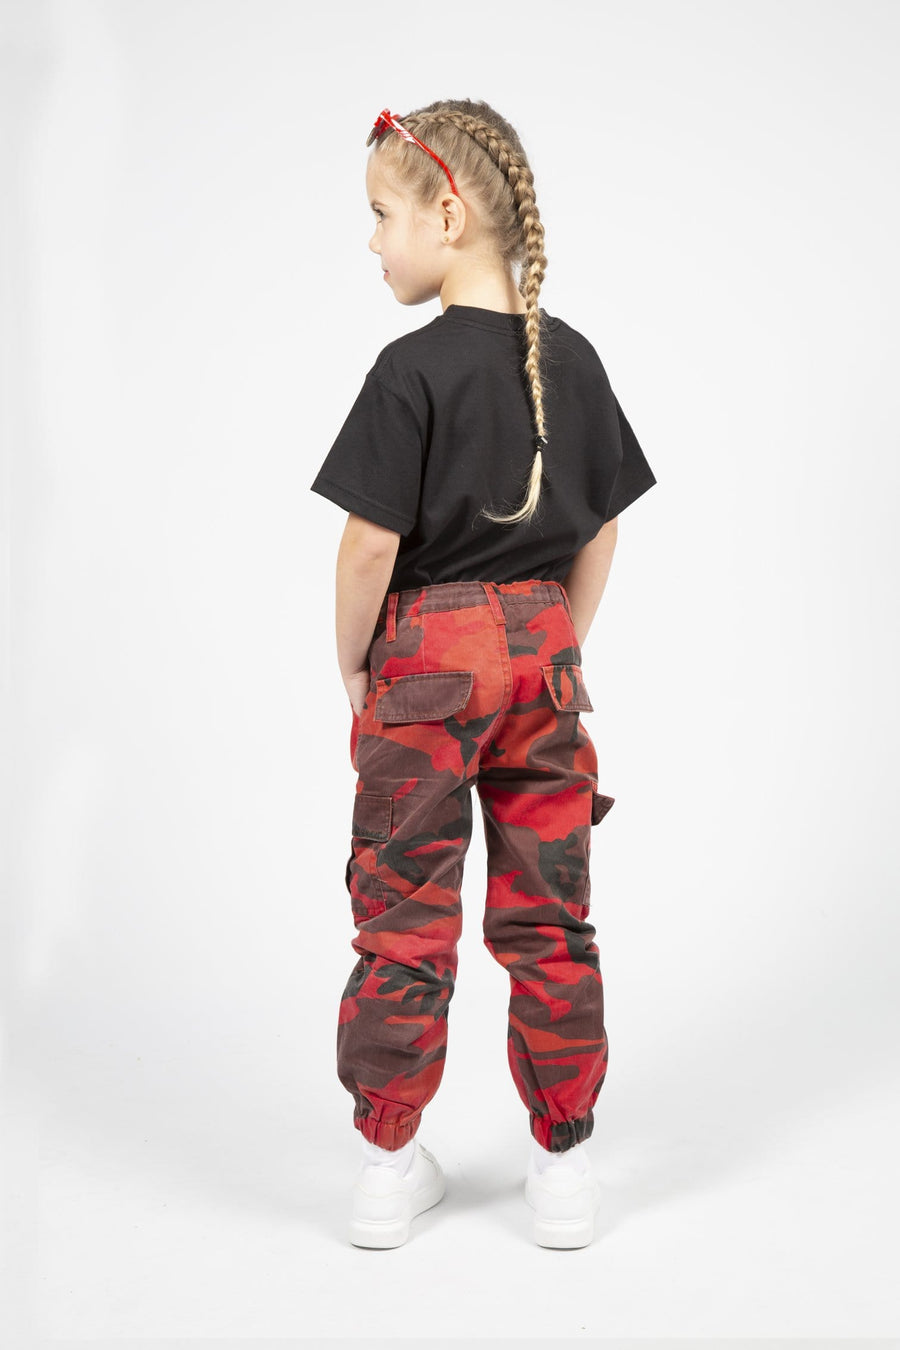 Xena Side Pocked Detail Cuffed Hem Army Print Cargo Pants Red